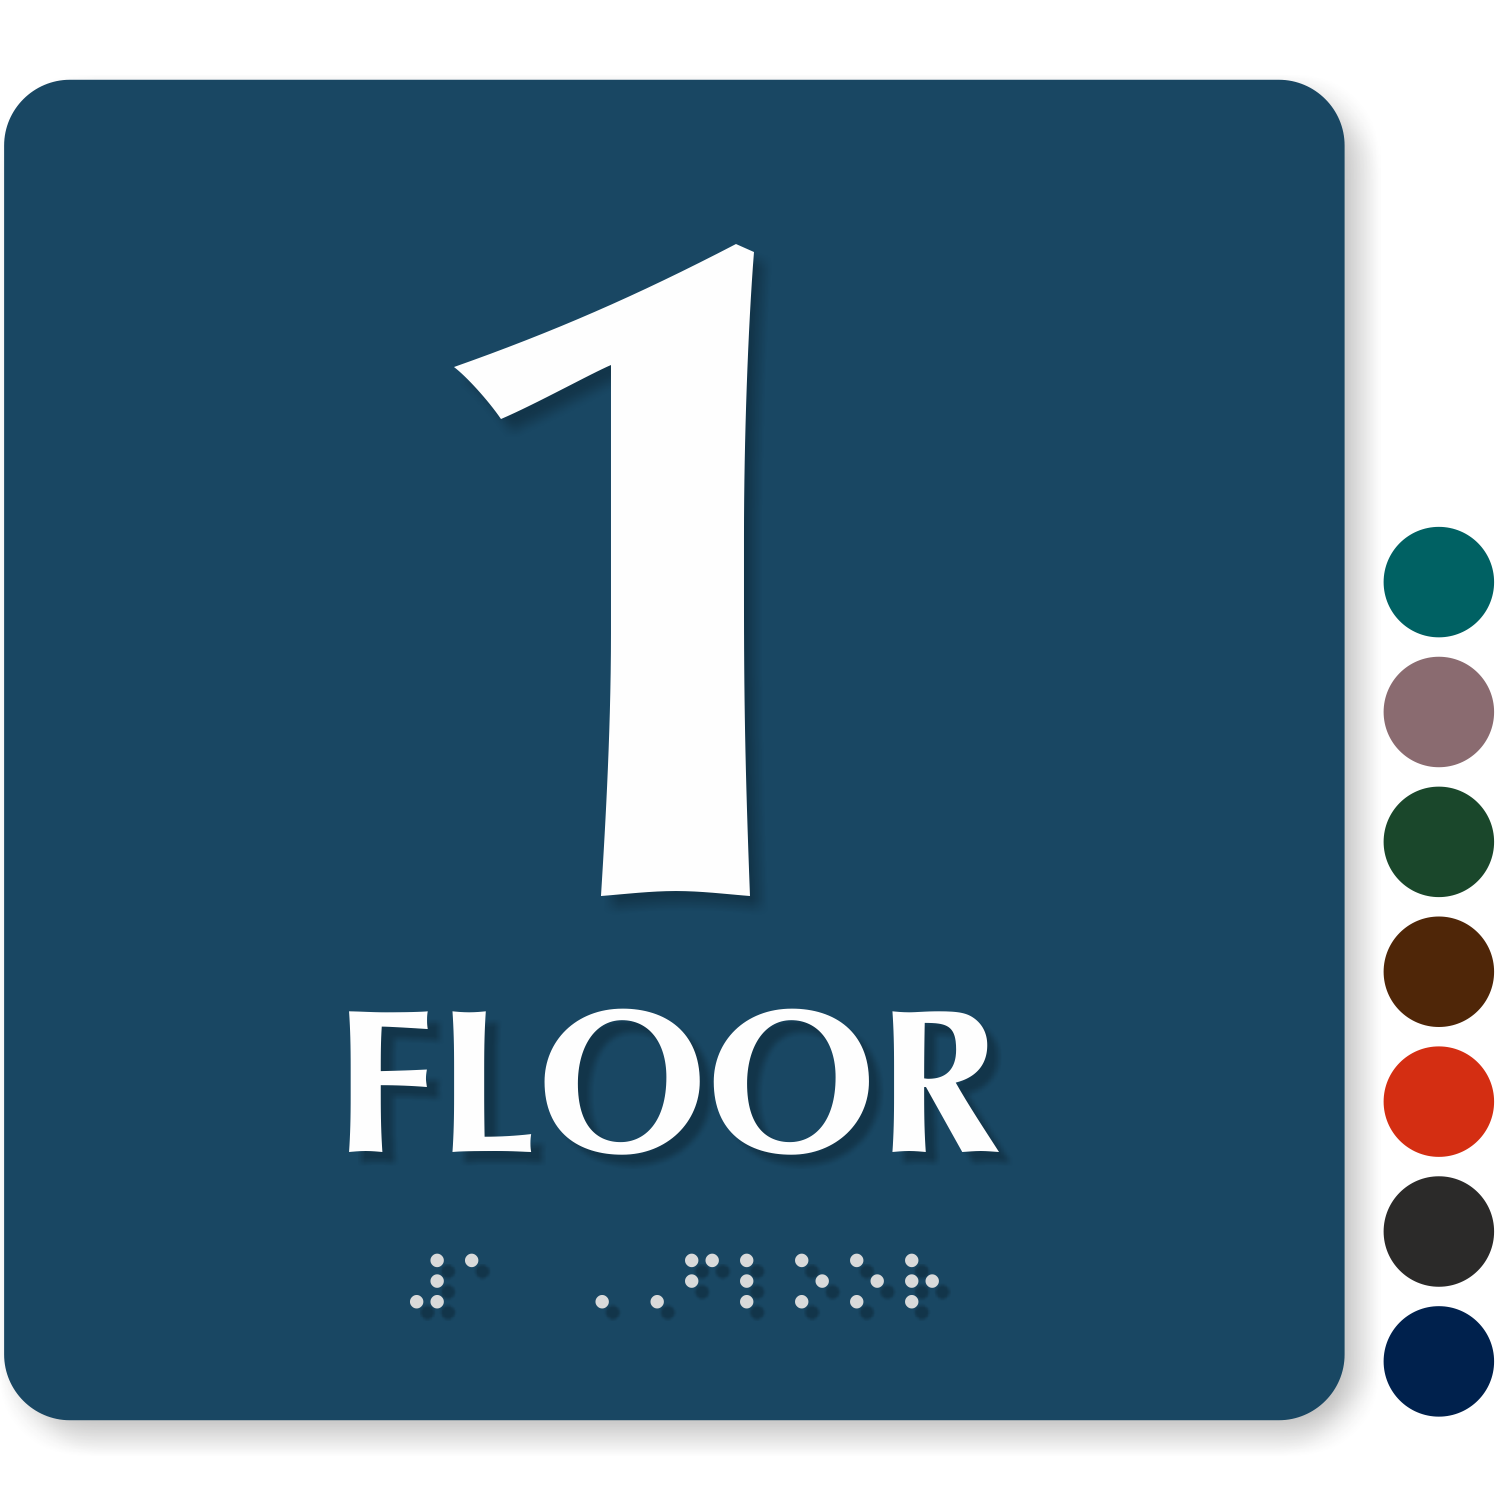 Number 1 Sign Floor number signs - roof access, re-entry & floor ...